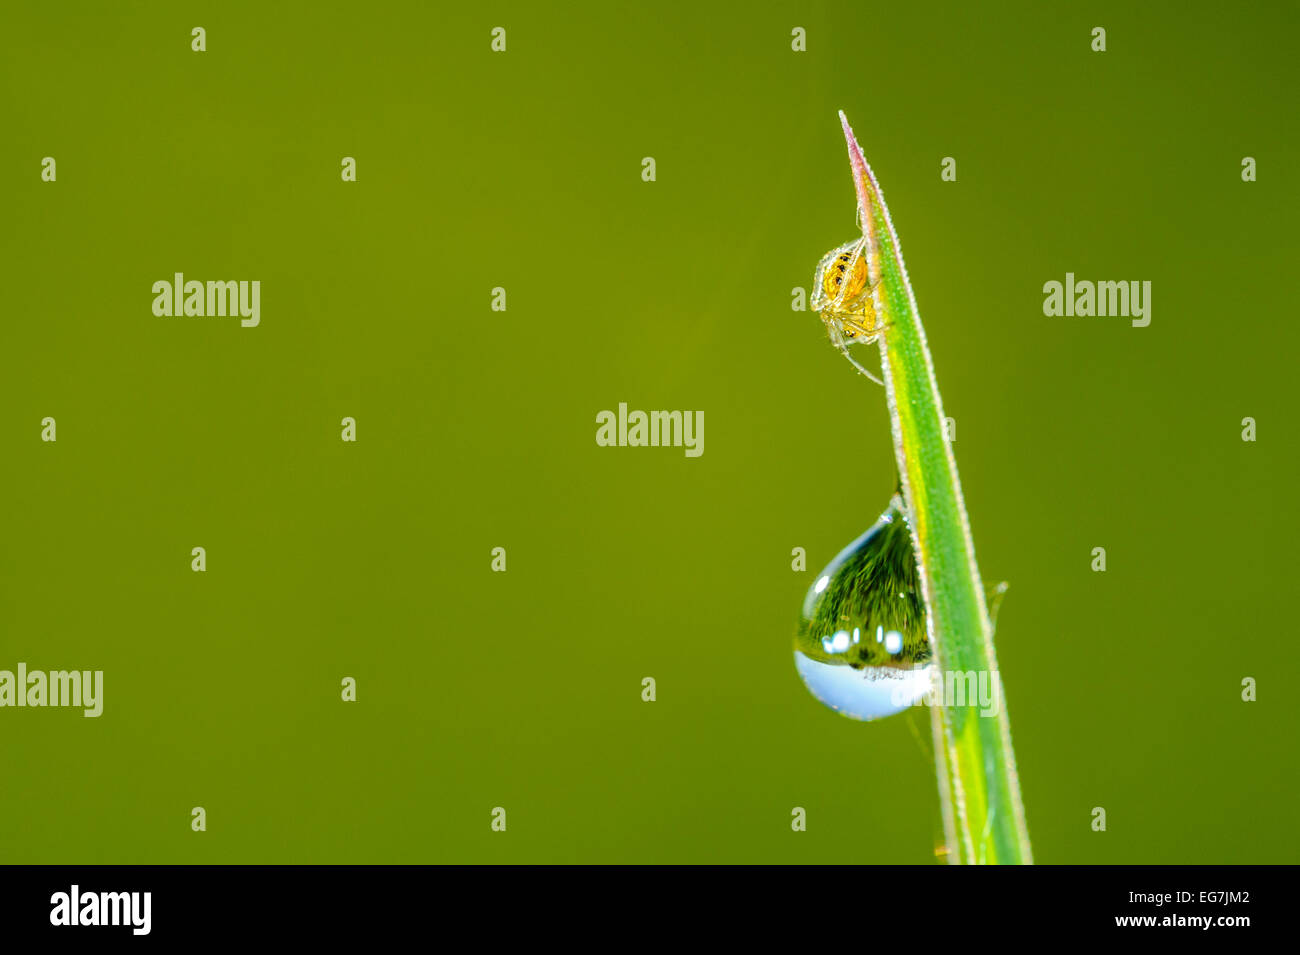 Little crab spider and water drop on leaf, mirroring. Clear green isolated background, morning freshness. Stock Photo